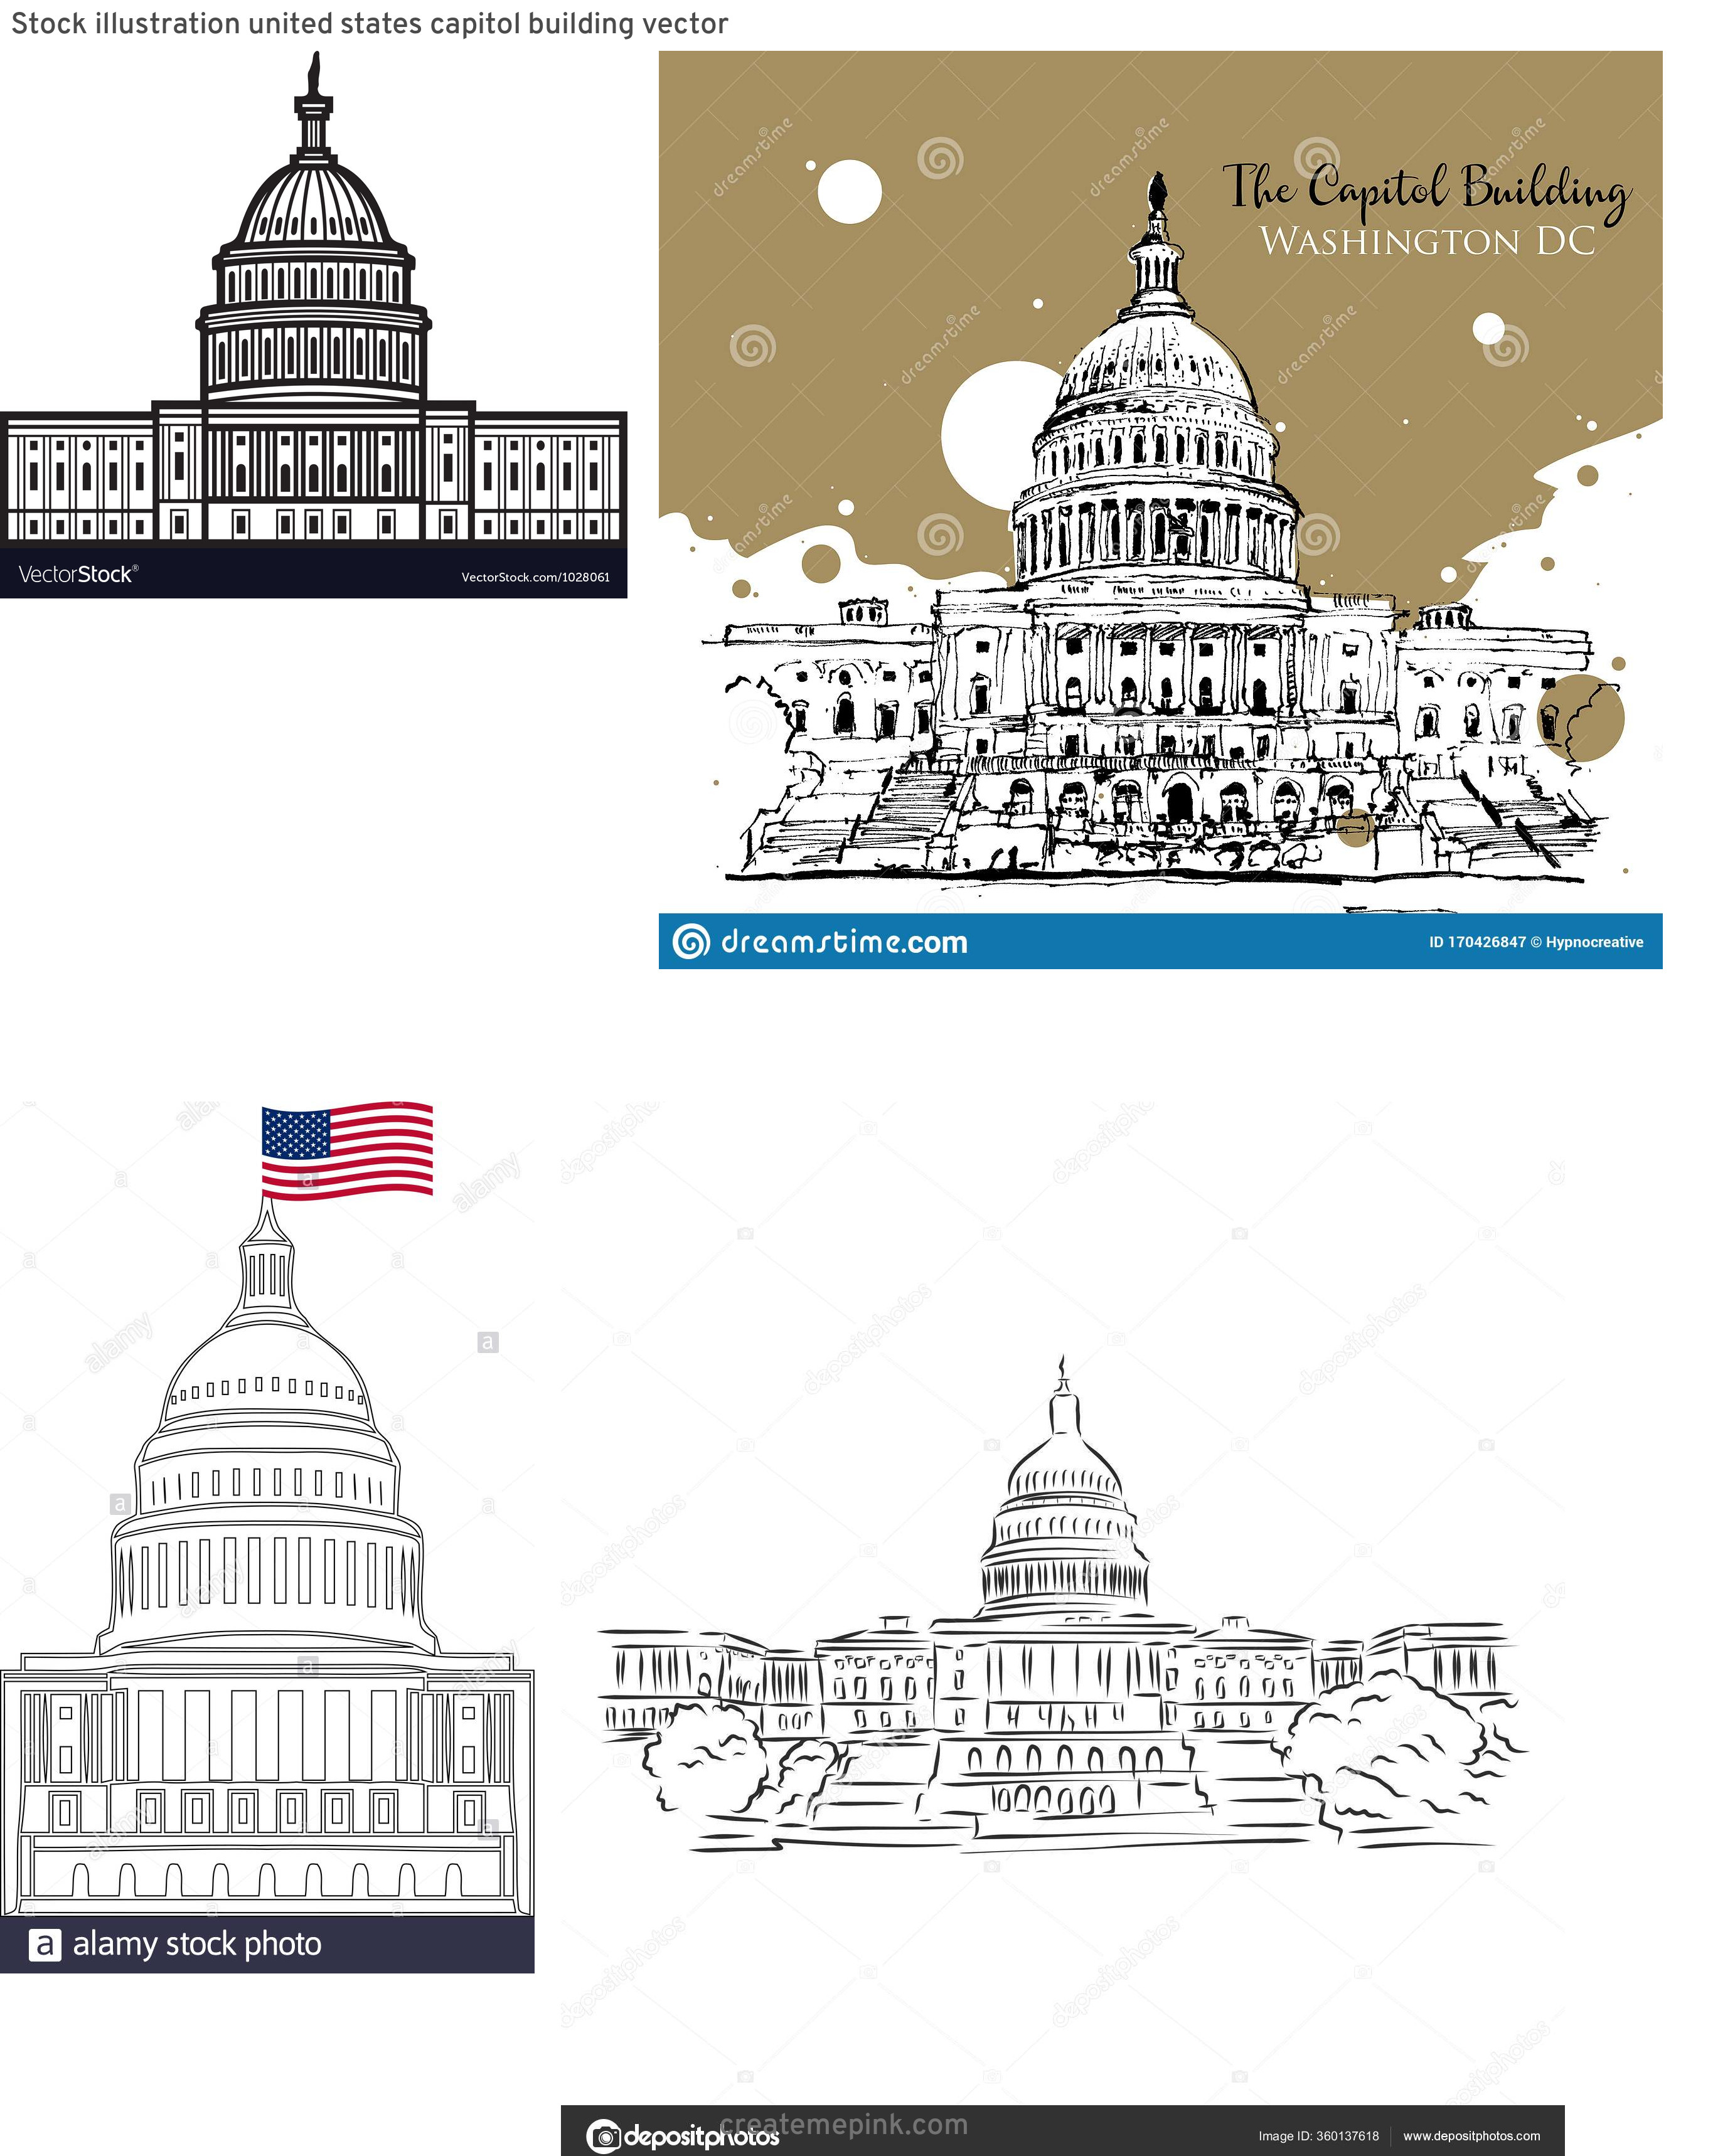 US Capital Vector Line Drawing: Stock Illustration United States Capitol Building Vector